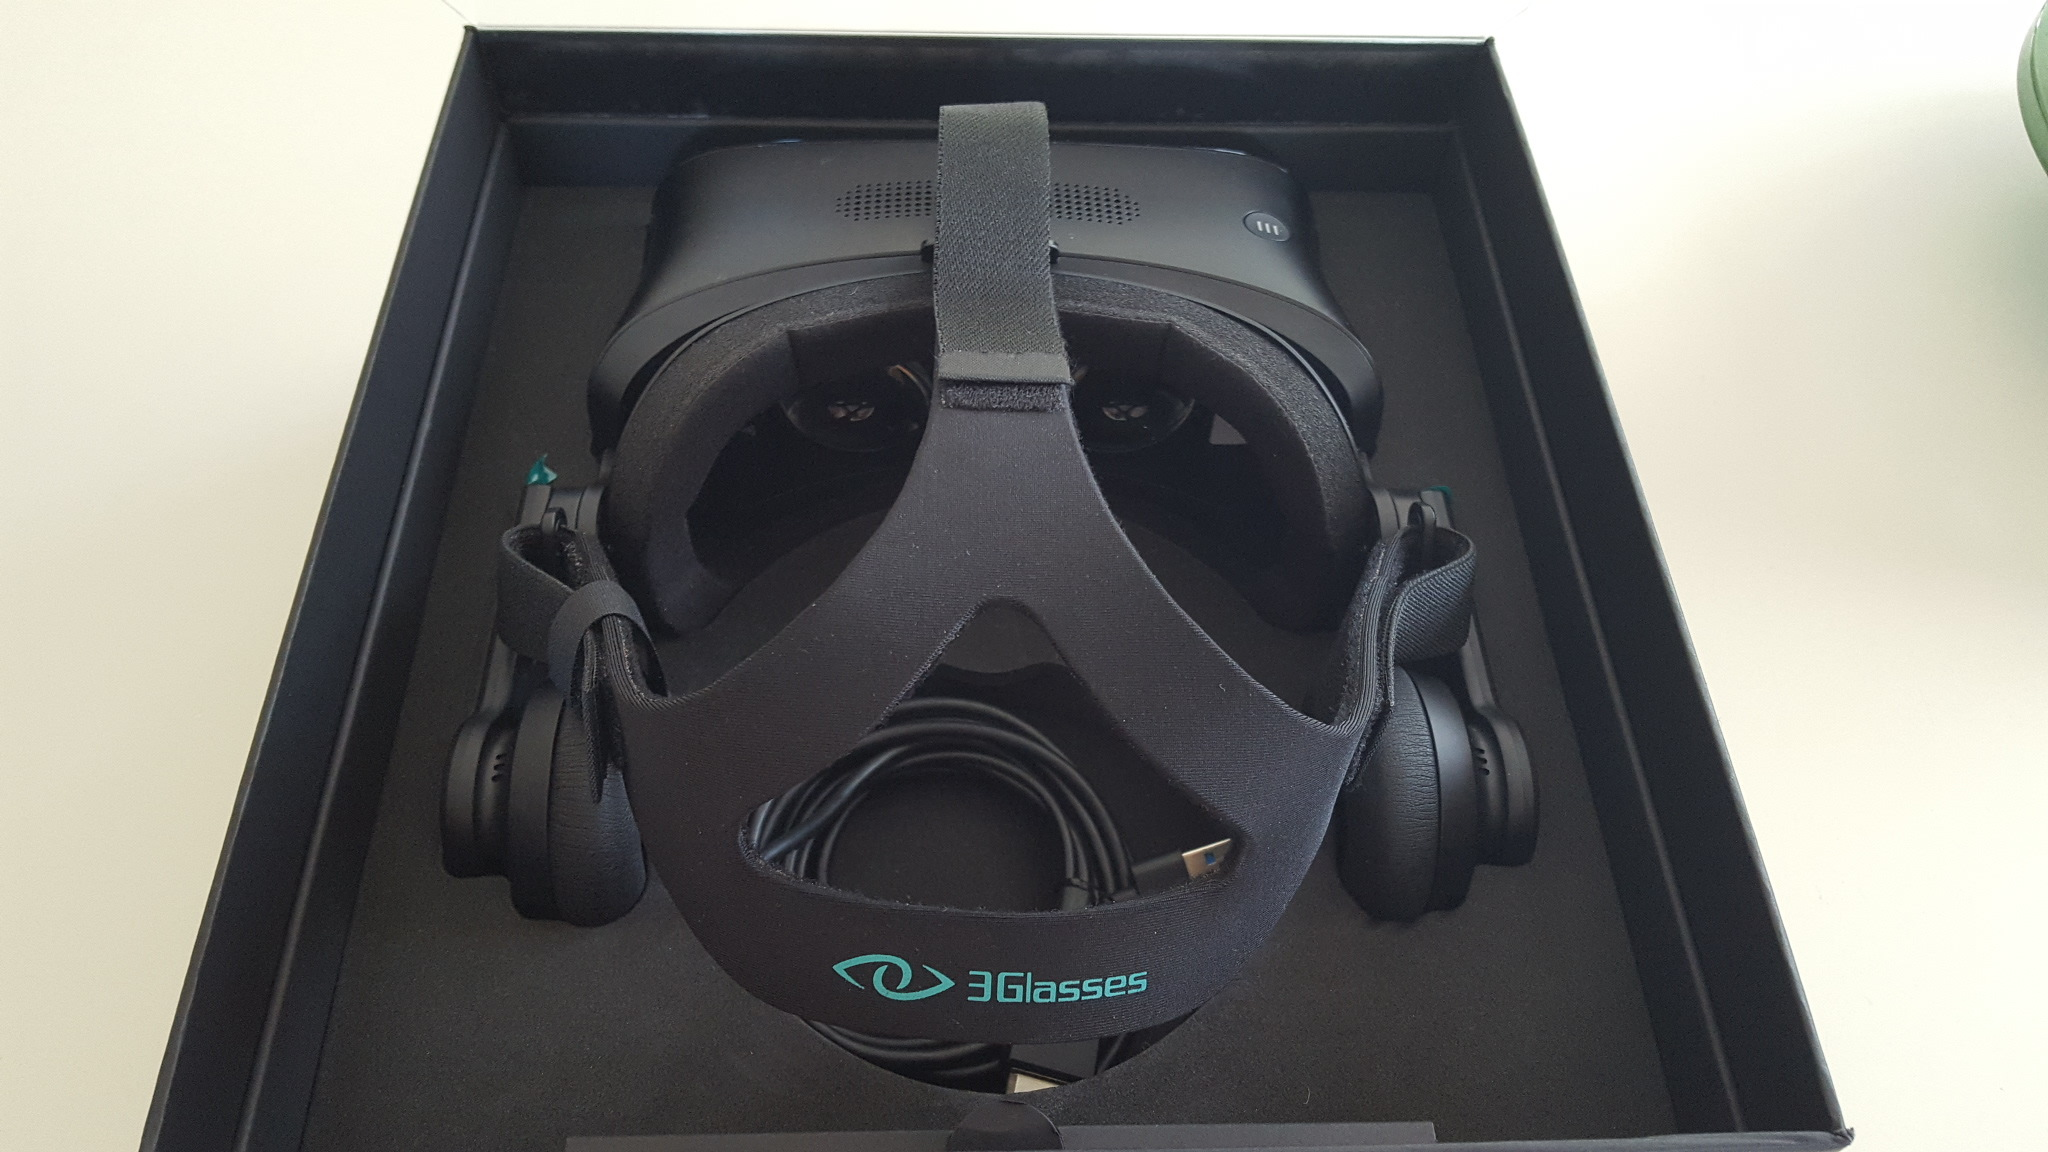 Pimax Competition: other HMD's - Pimax 4K Series - Pimax Forums